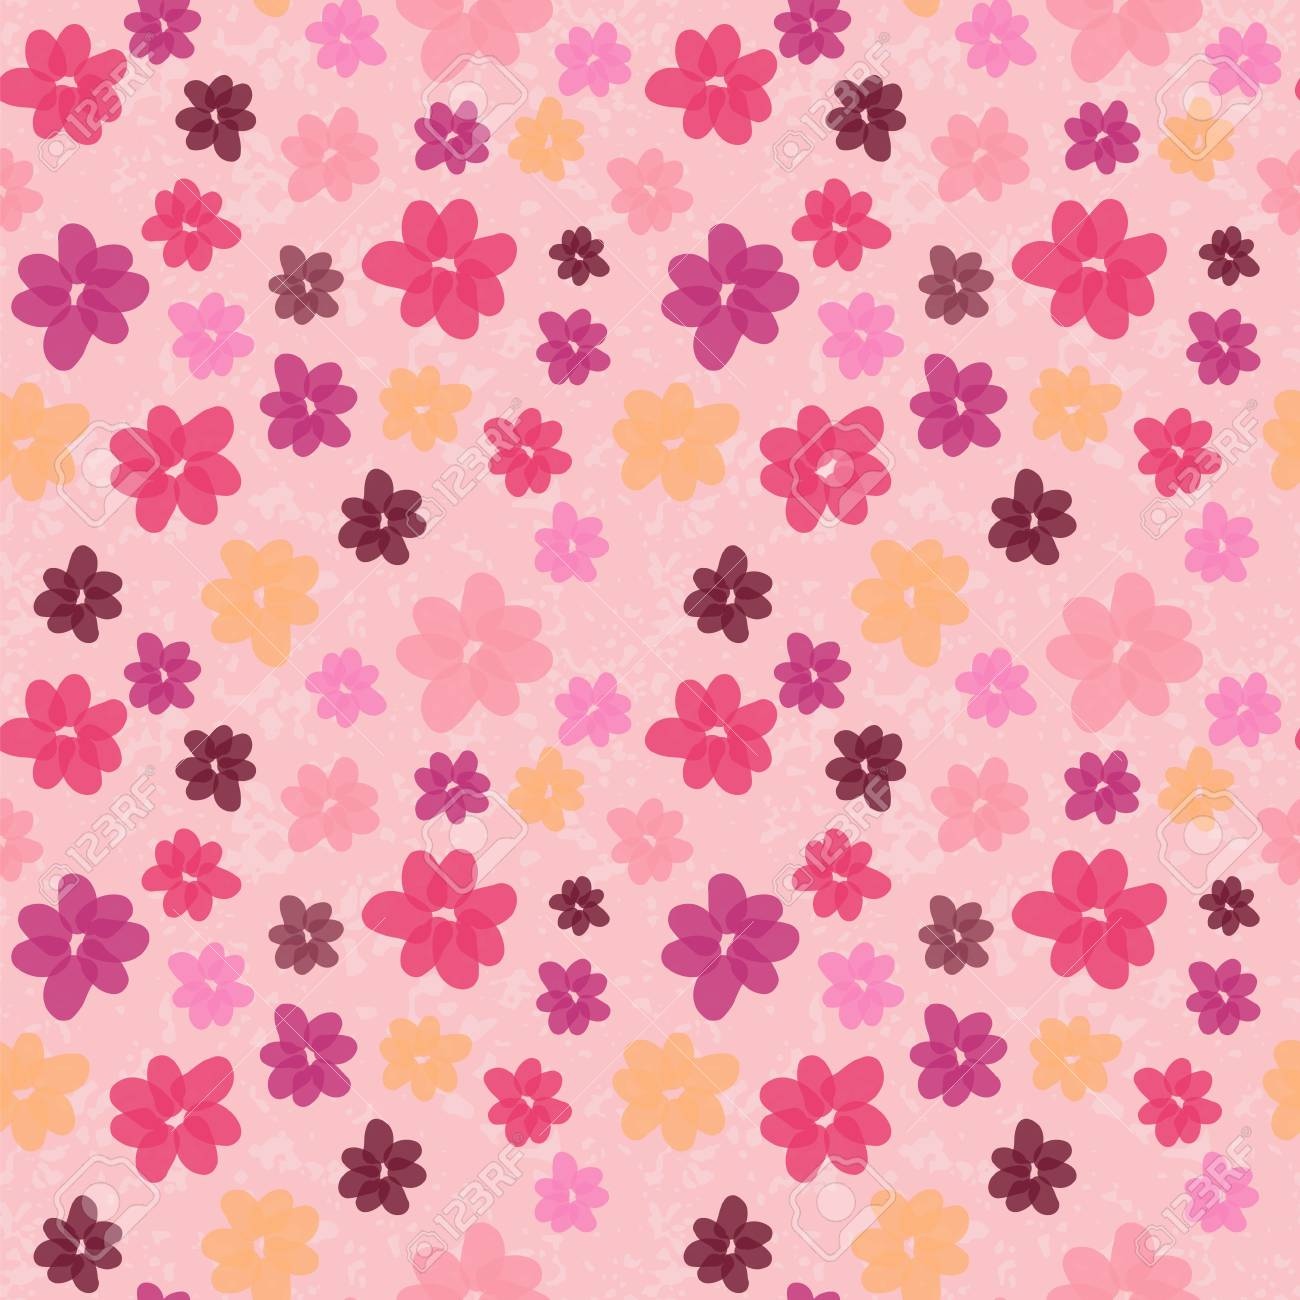 Seamless Colorful Floral Pattern Vector Background With Abstract